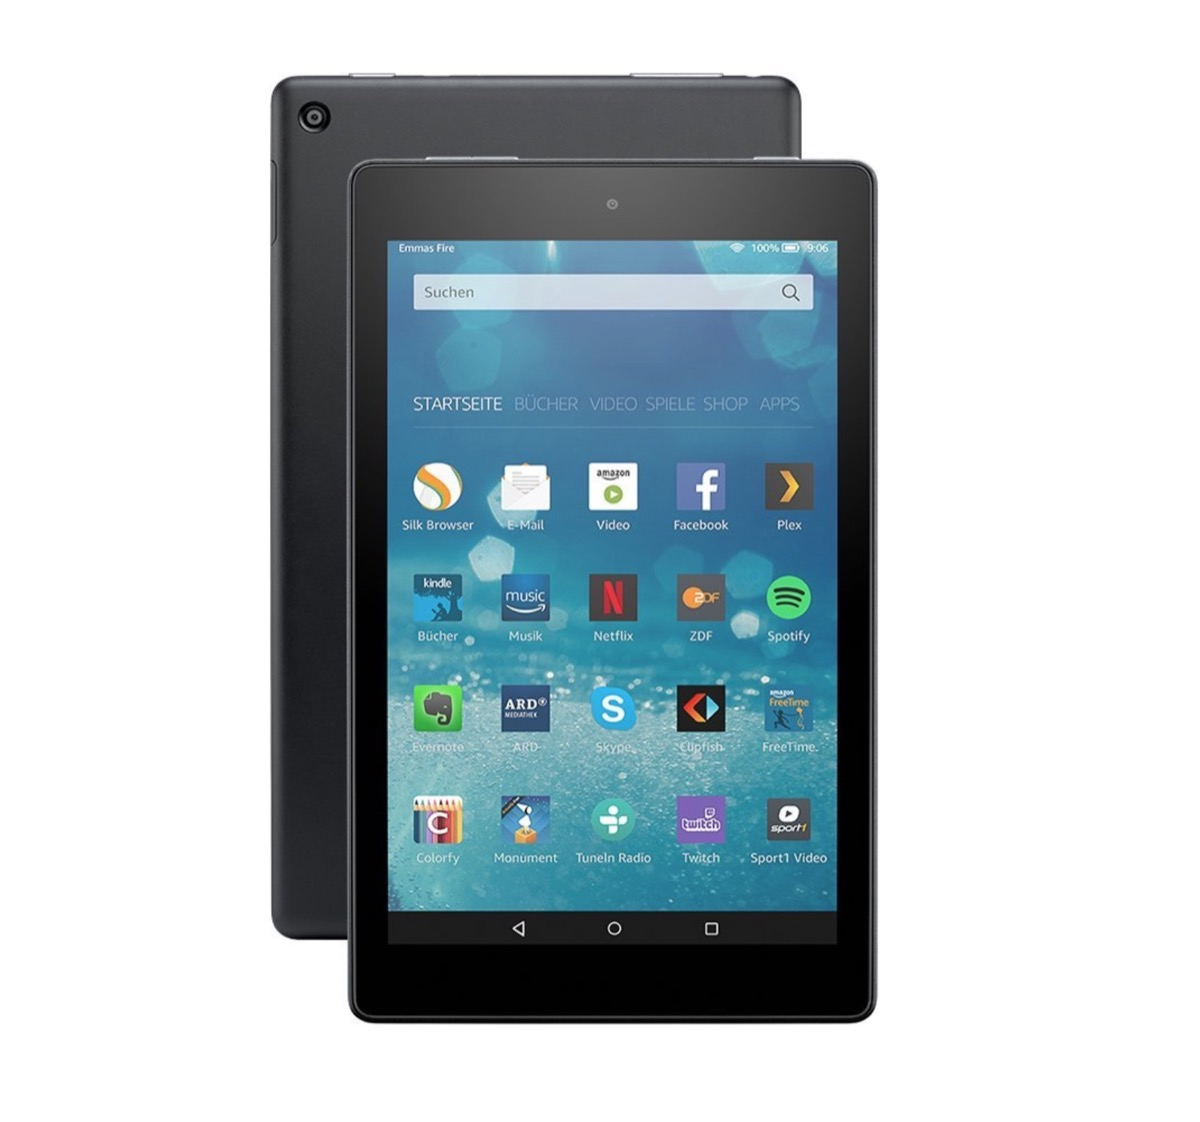 Welches Tablet FГјr Spiele